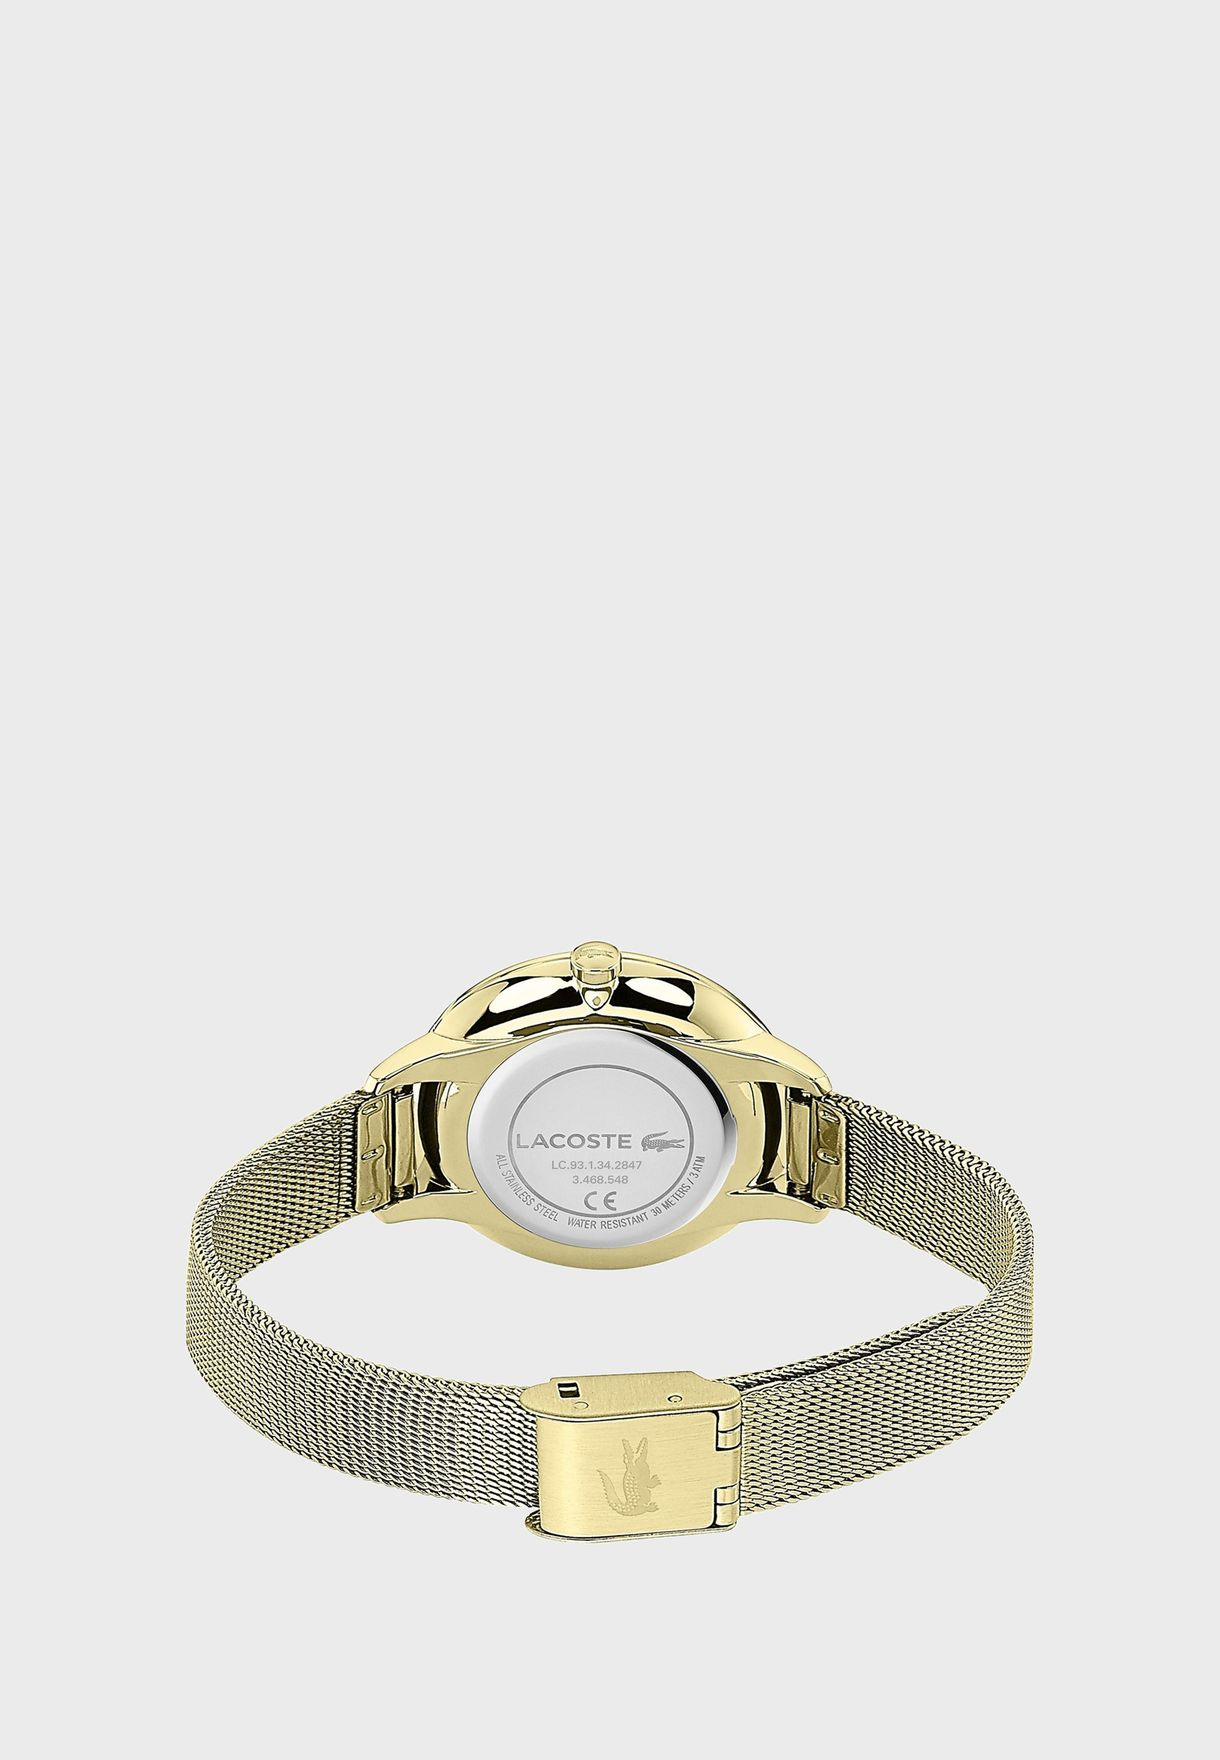 Lacoste Cannes Mesh strap Watch for Women - 2001102